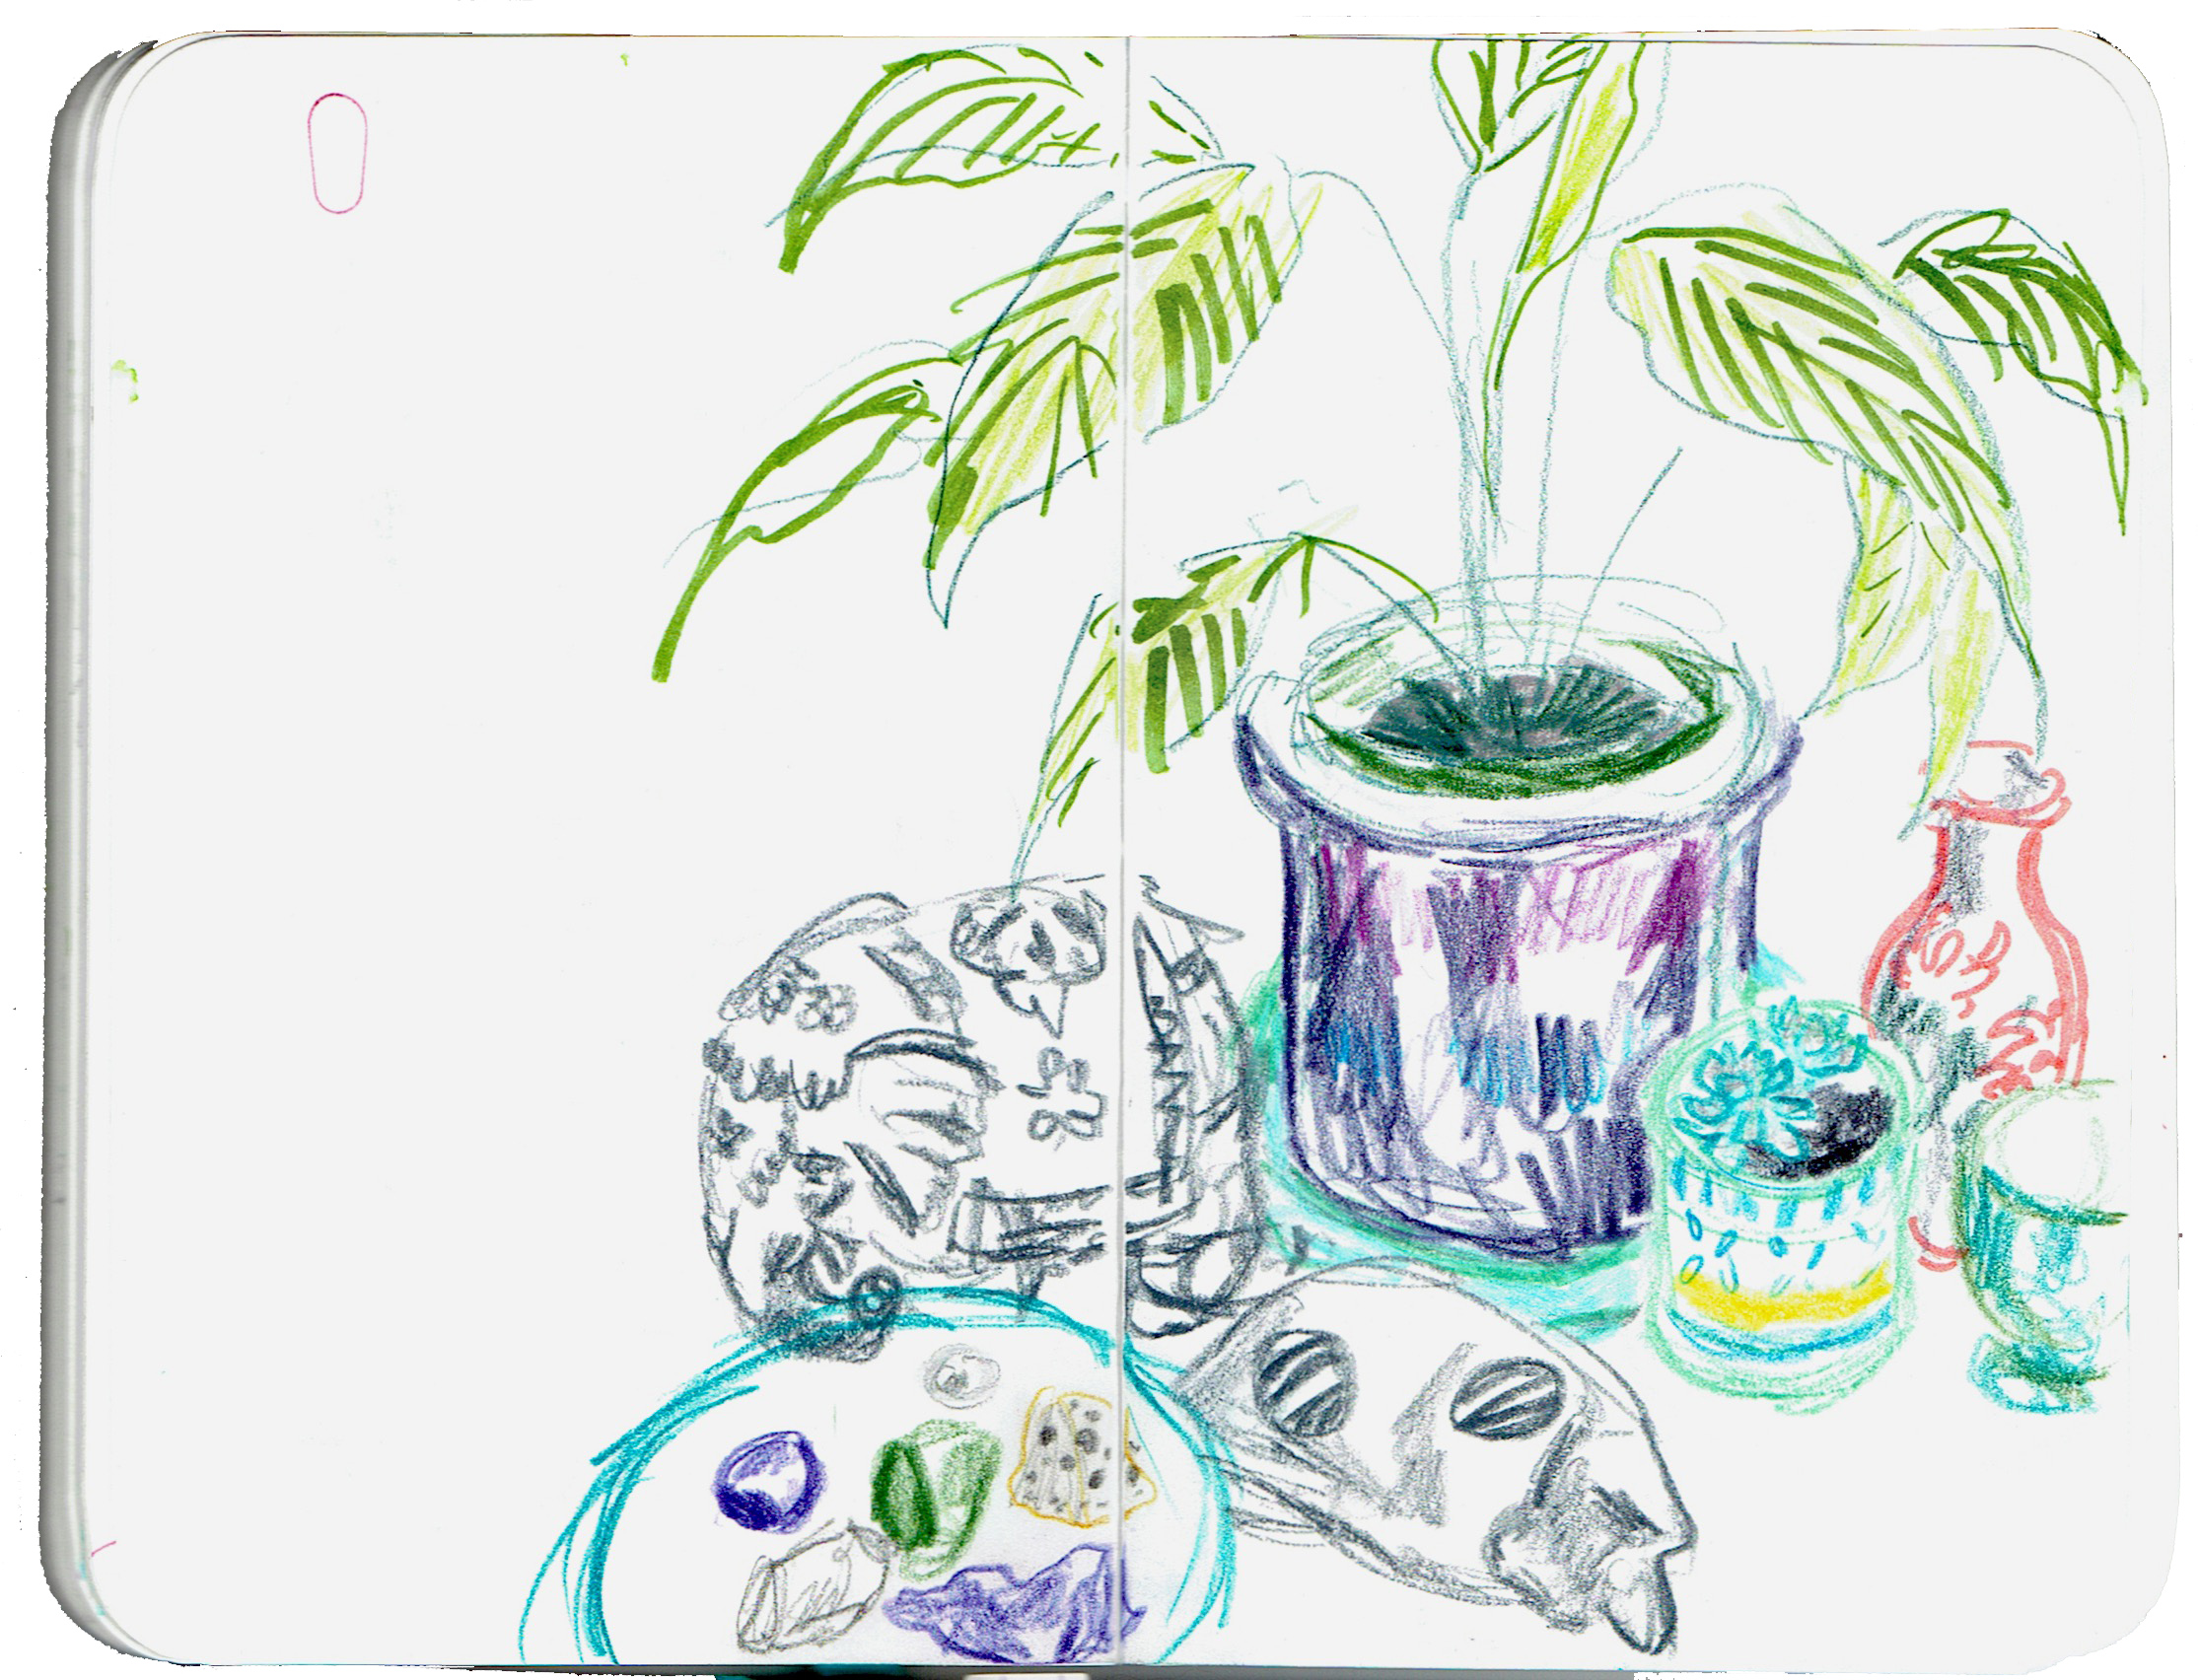 Colourful pencil sketch of potted plants, an elephant ornament, a marble cat, and some gemstones on a plate